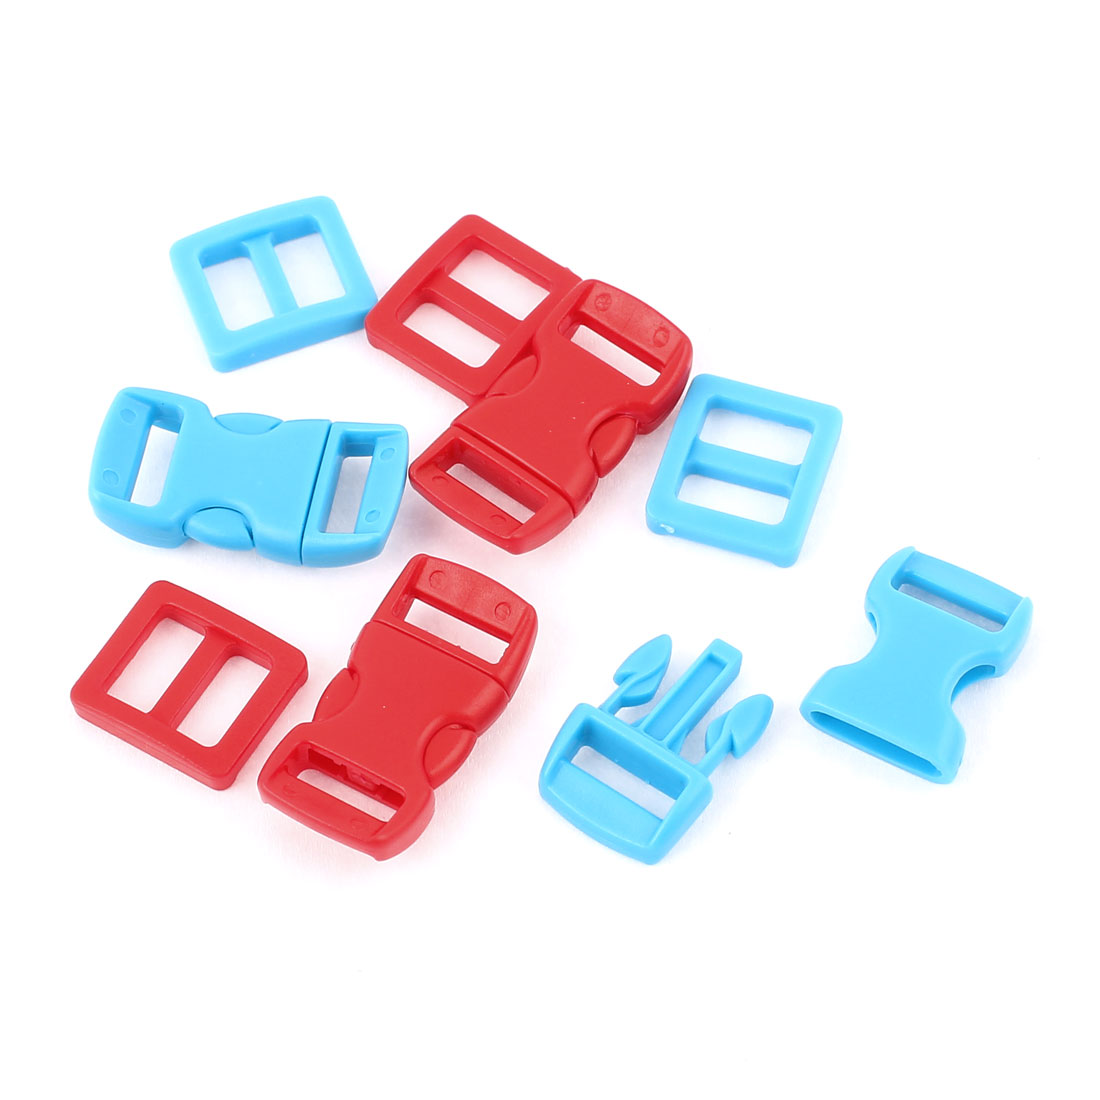 8 in 1 Red Blue 10mm Wdith Plastic Backpack Rucksack Quick Release Buckle Hooks